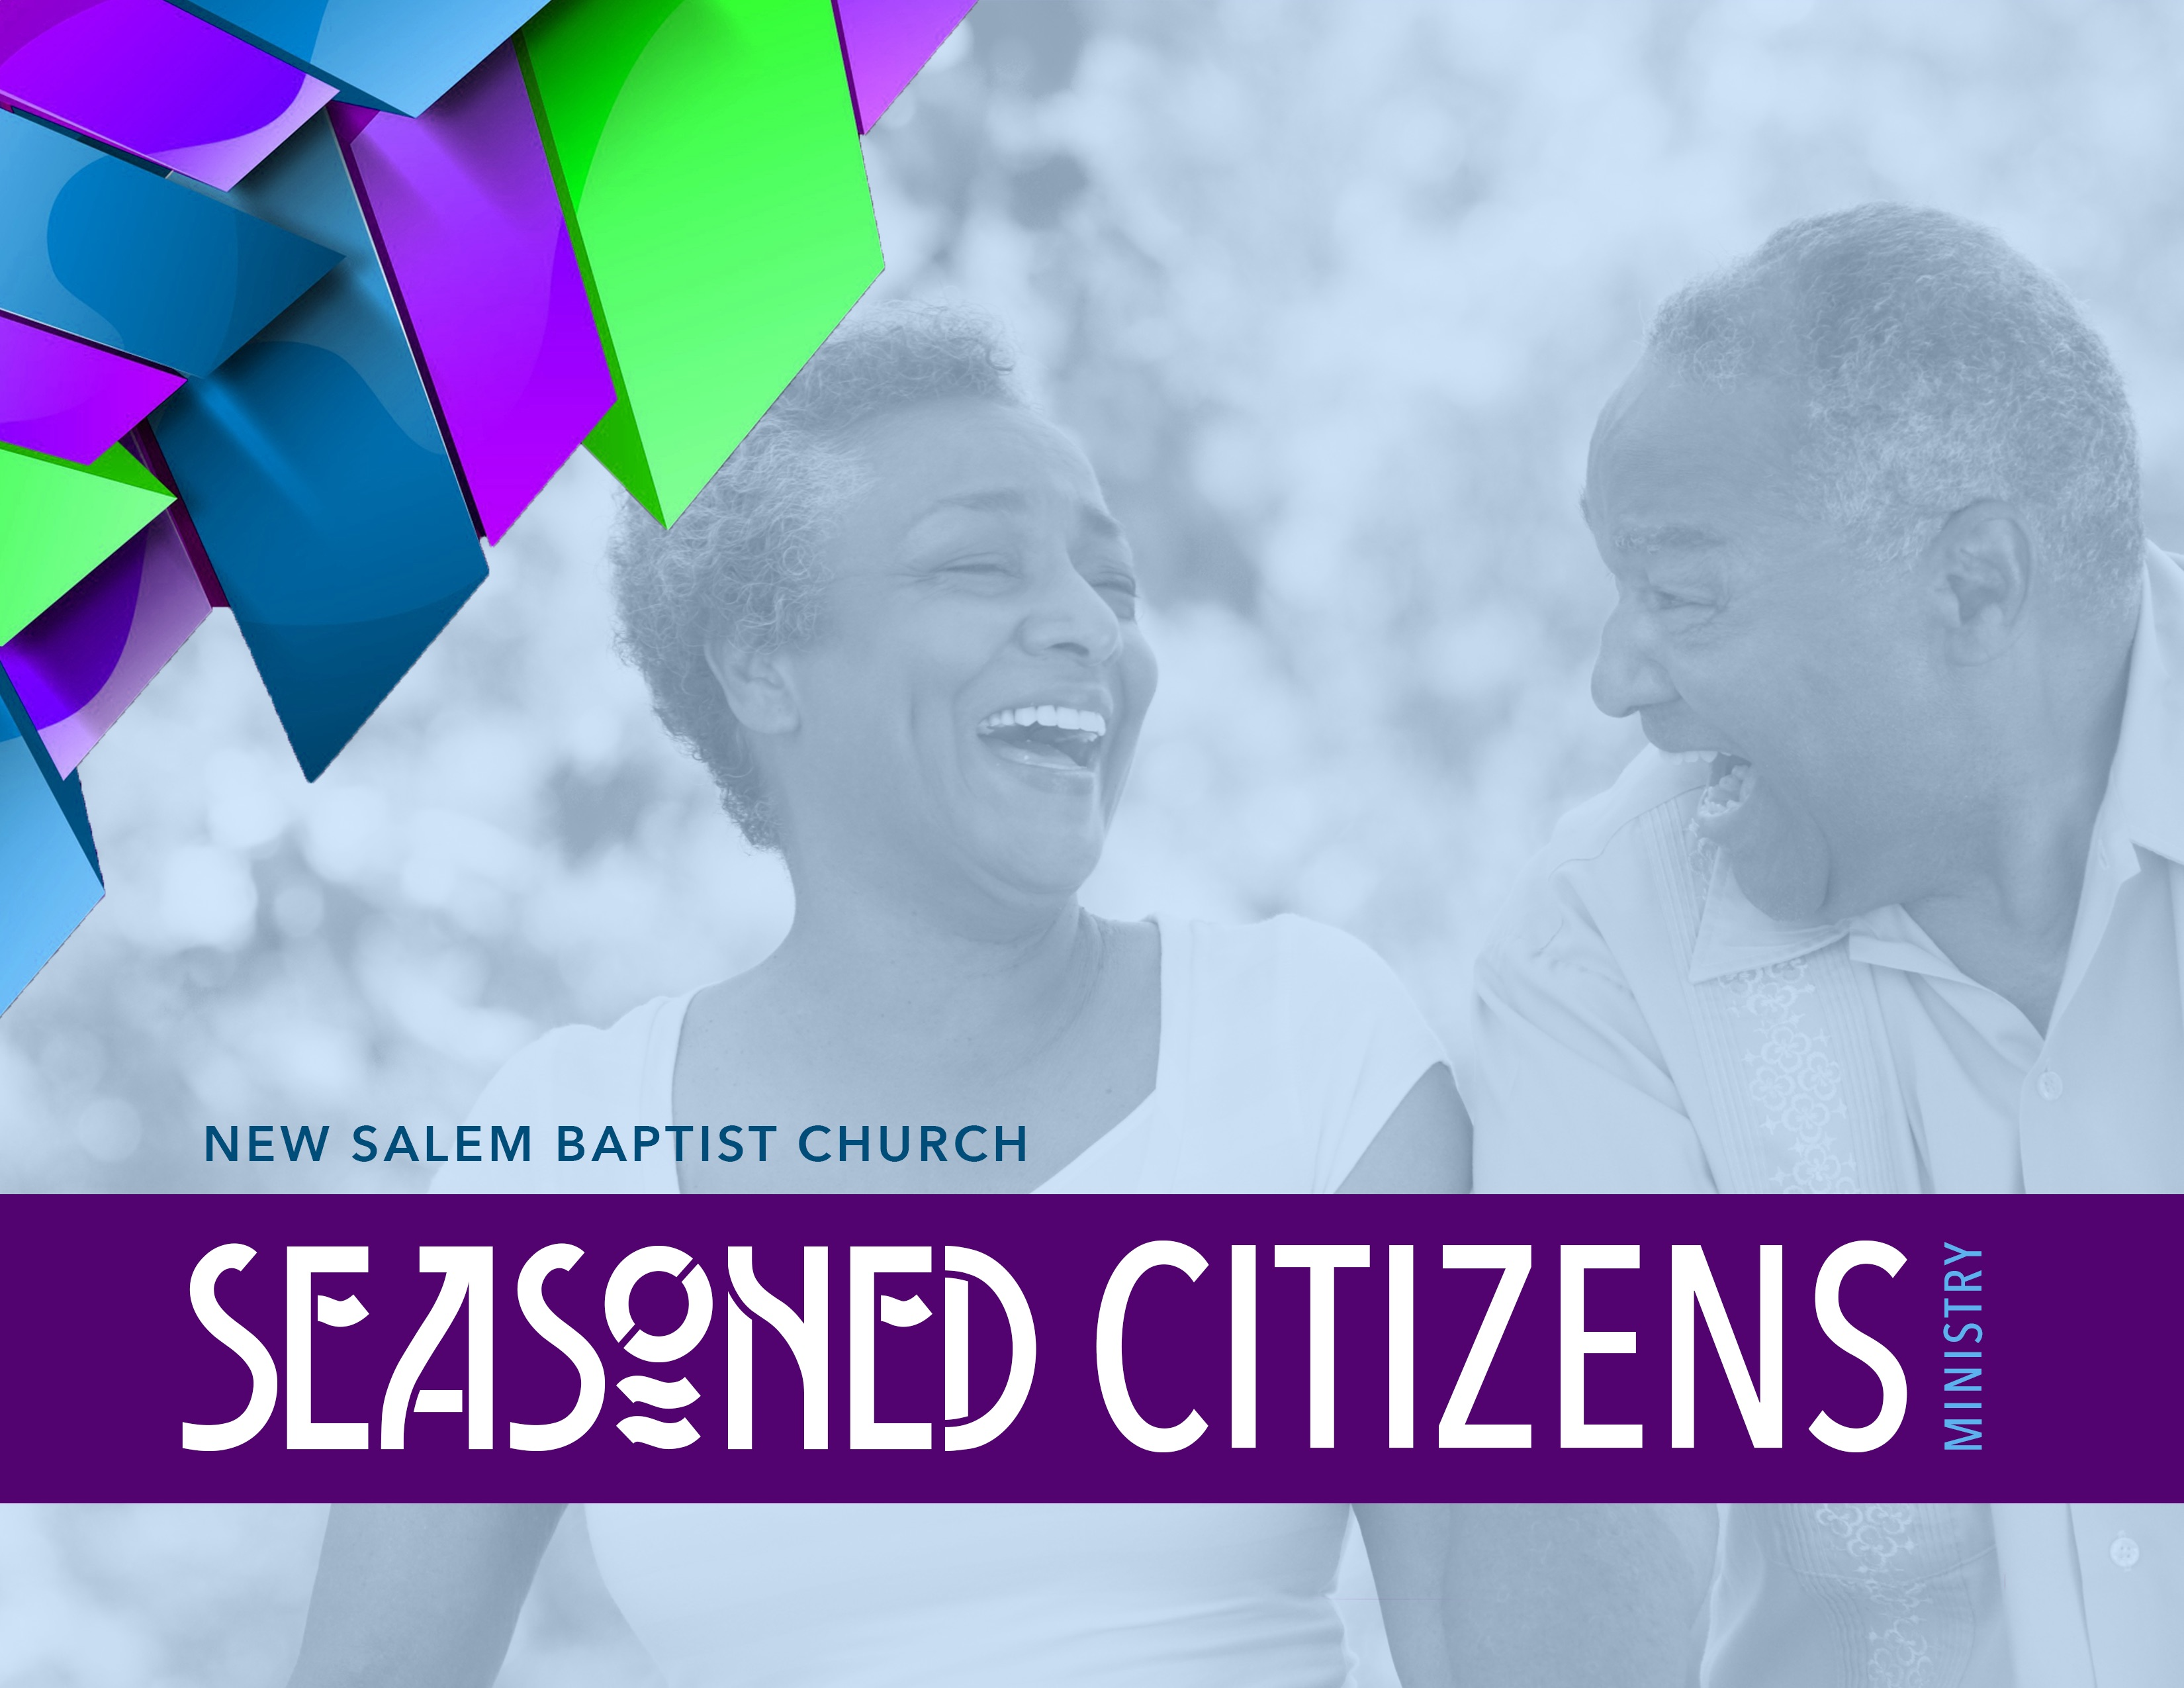 Seasoned Citizens Ministry